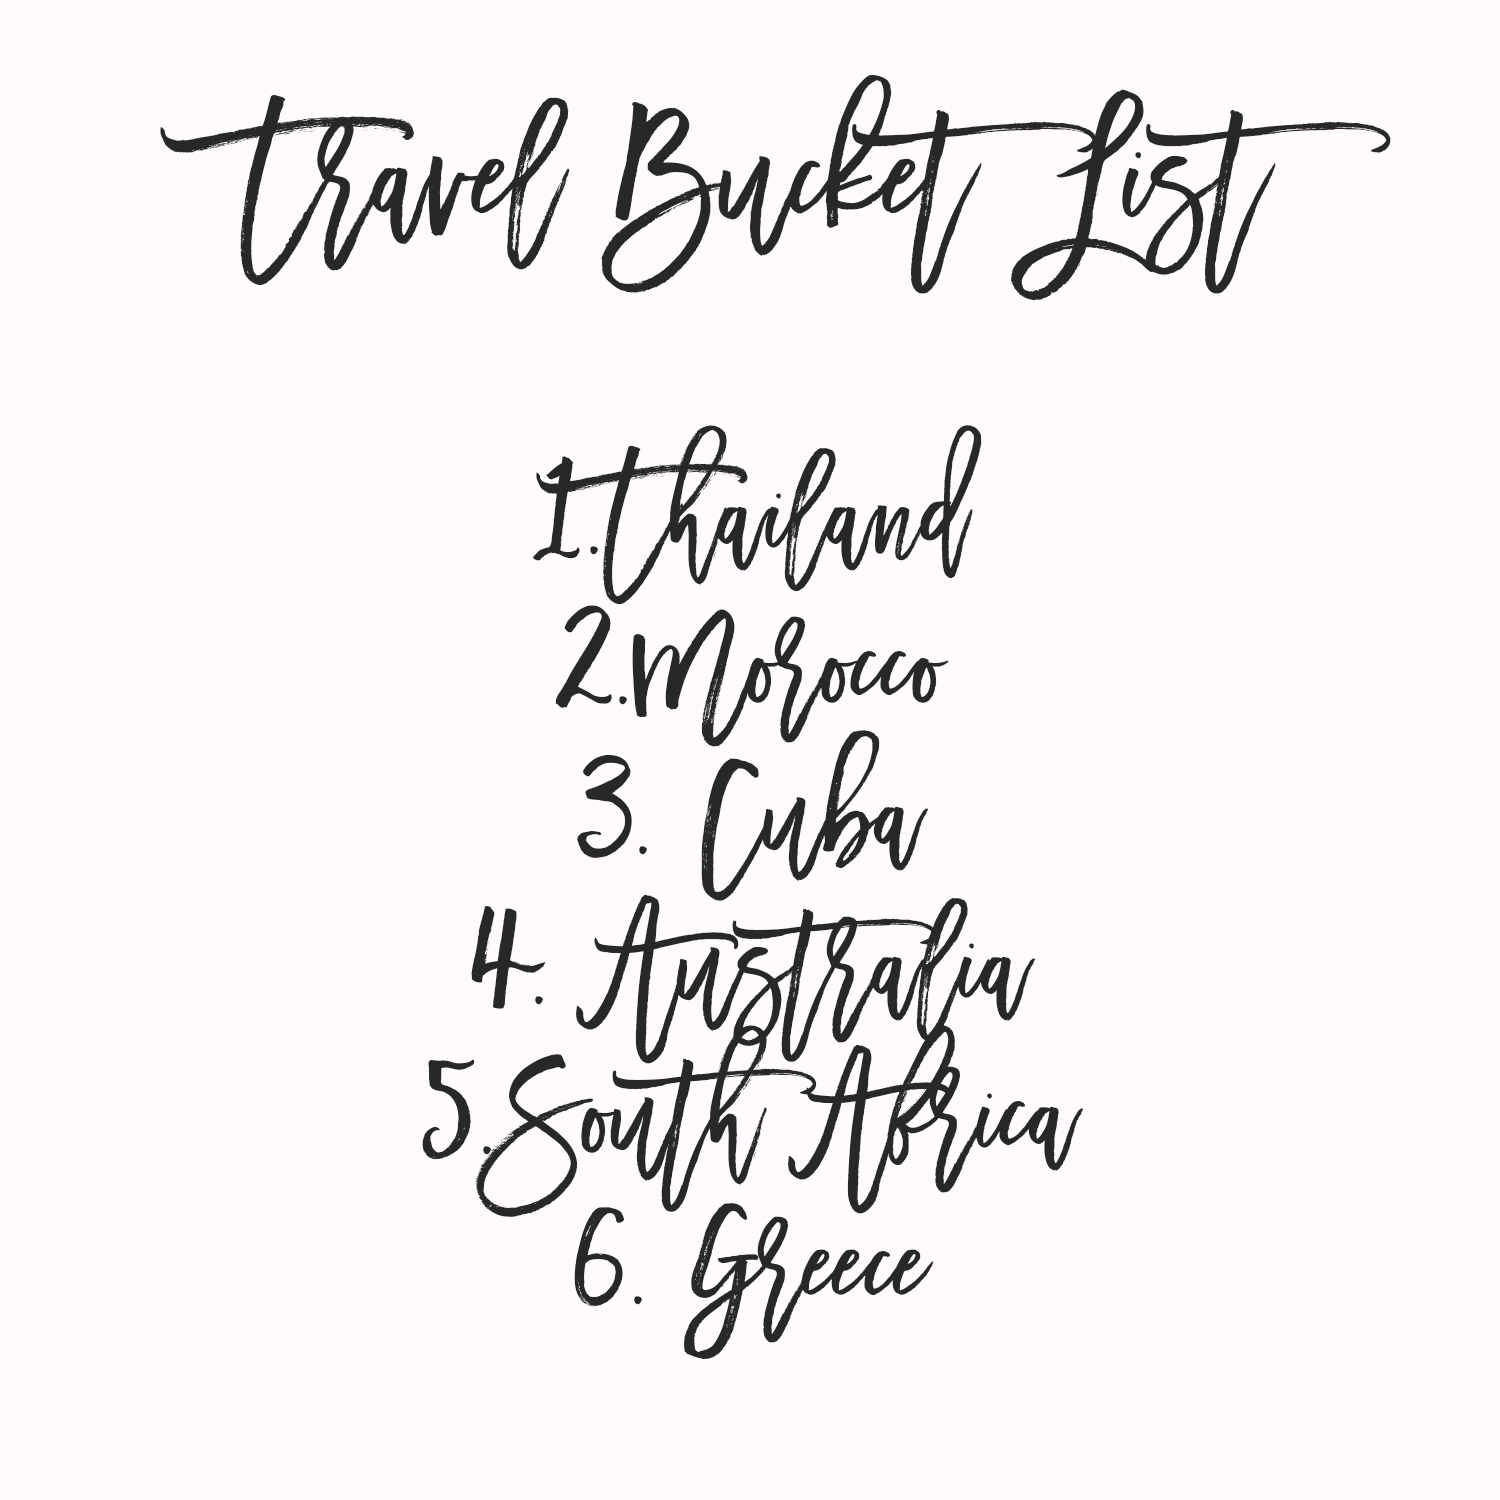 bucket list travel rebecca plotnick